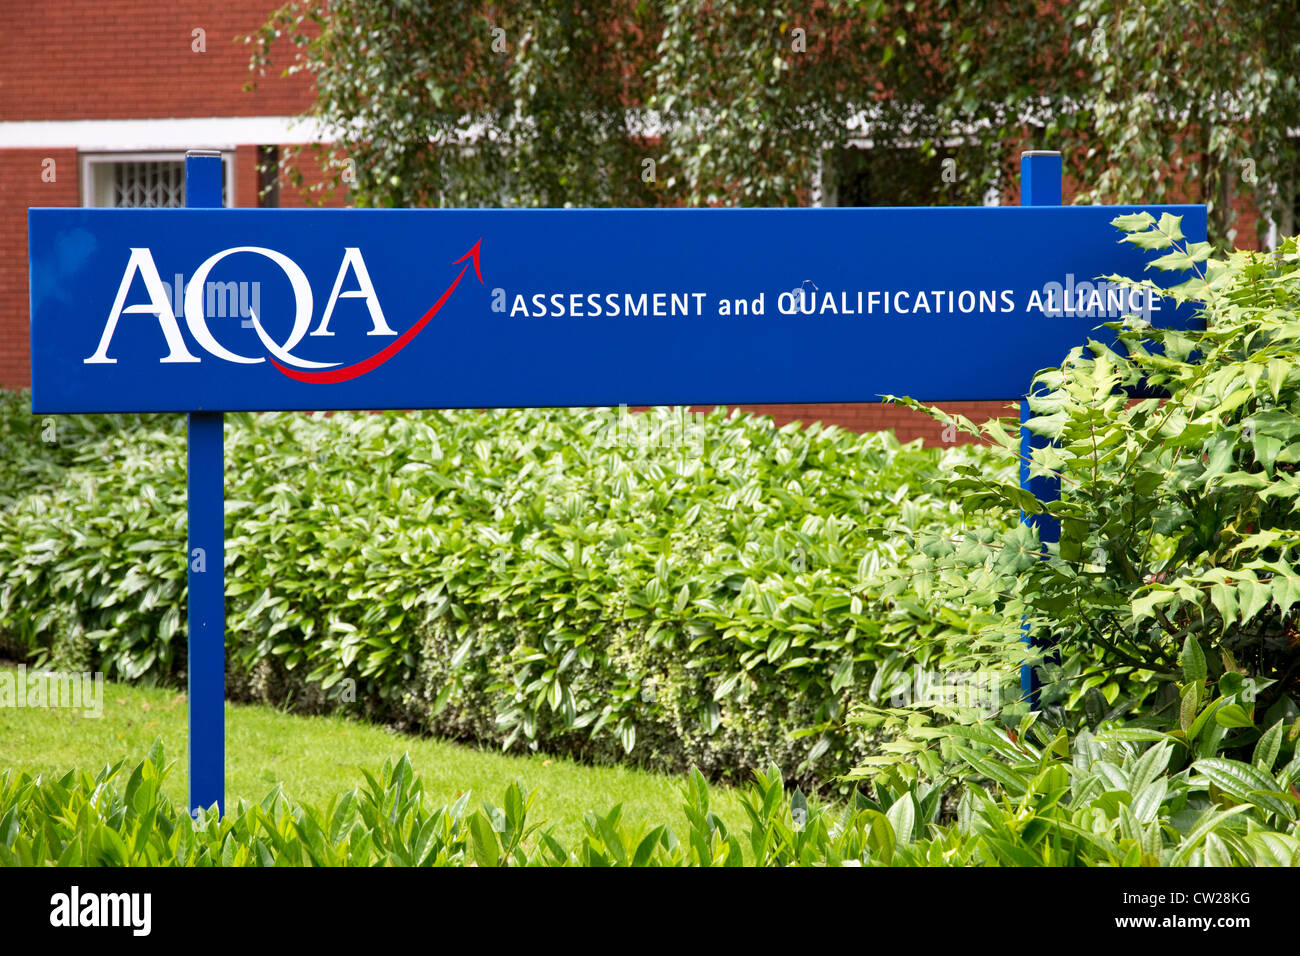 AQA offices, Manchester, England, UK - Stock Image